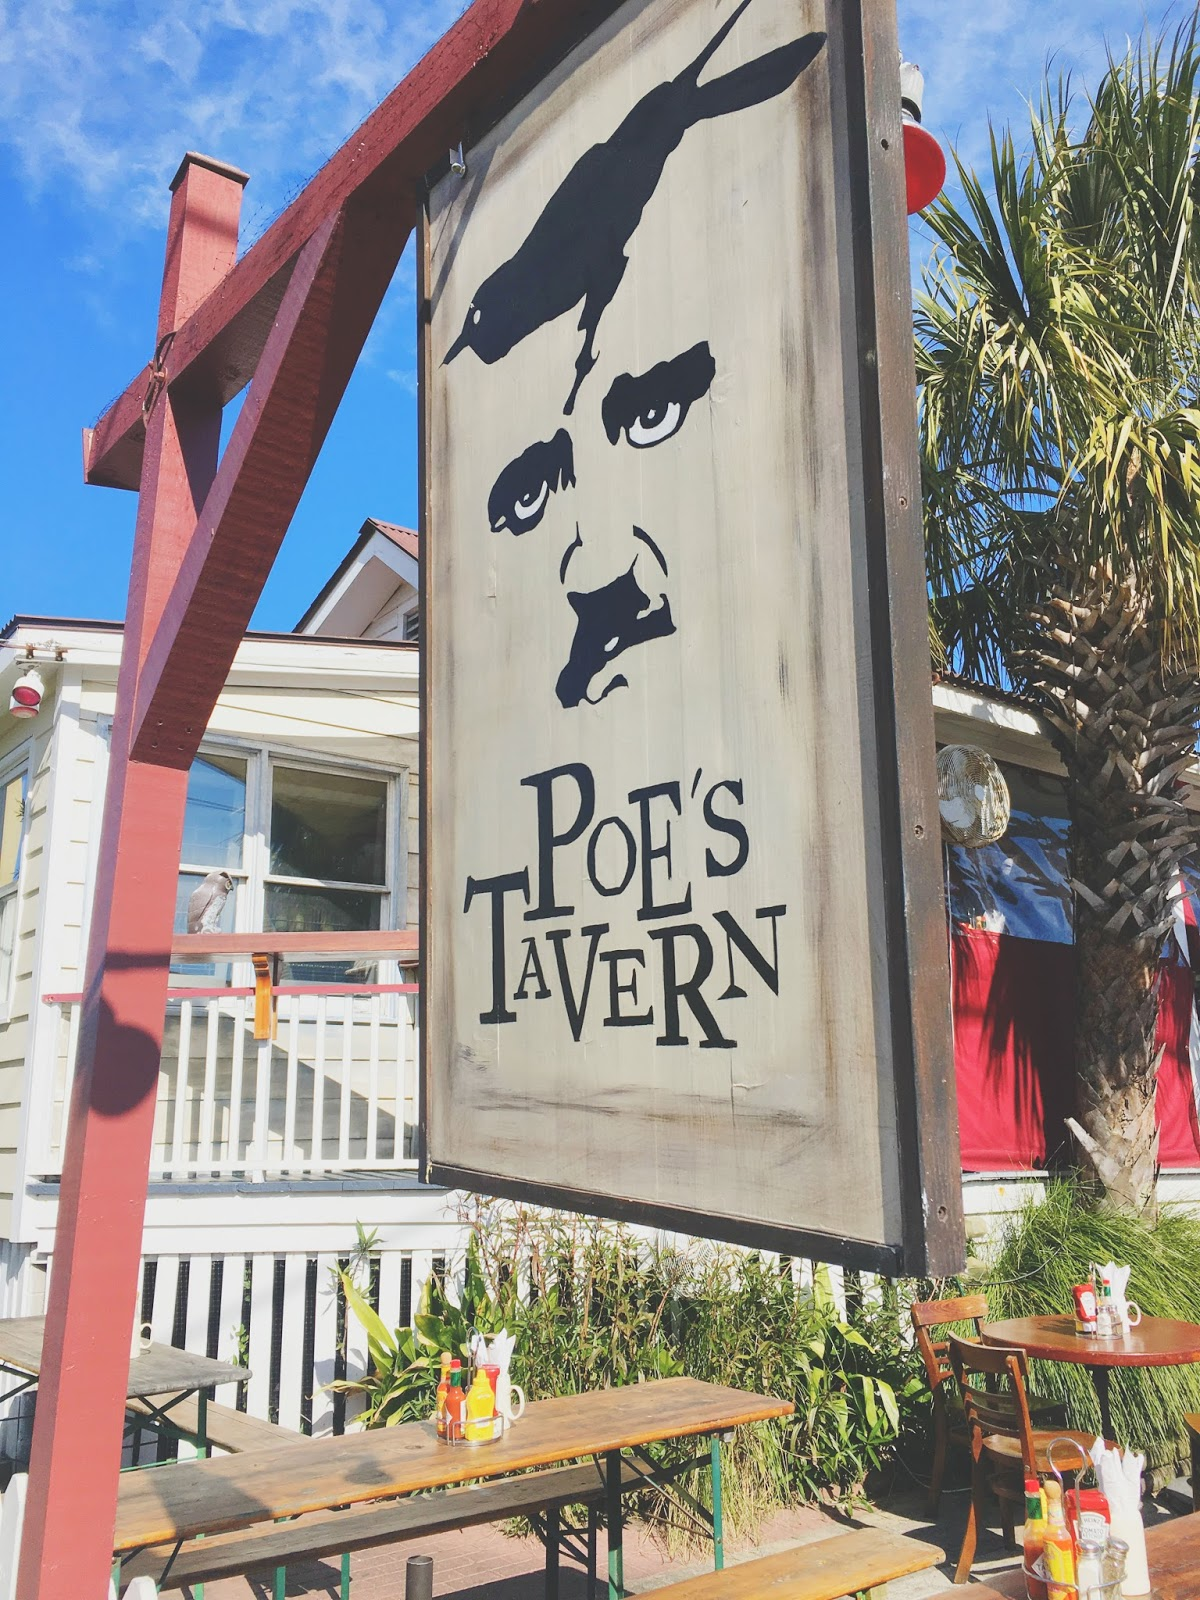 Poe's Tavern - a restaurant on Sullivan's Island in Charleston, South Carolina